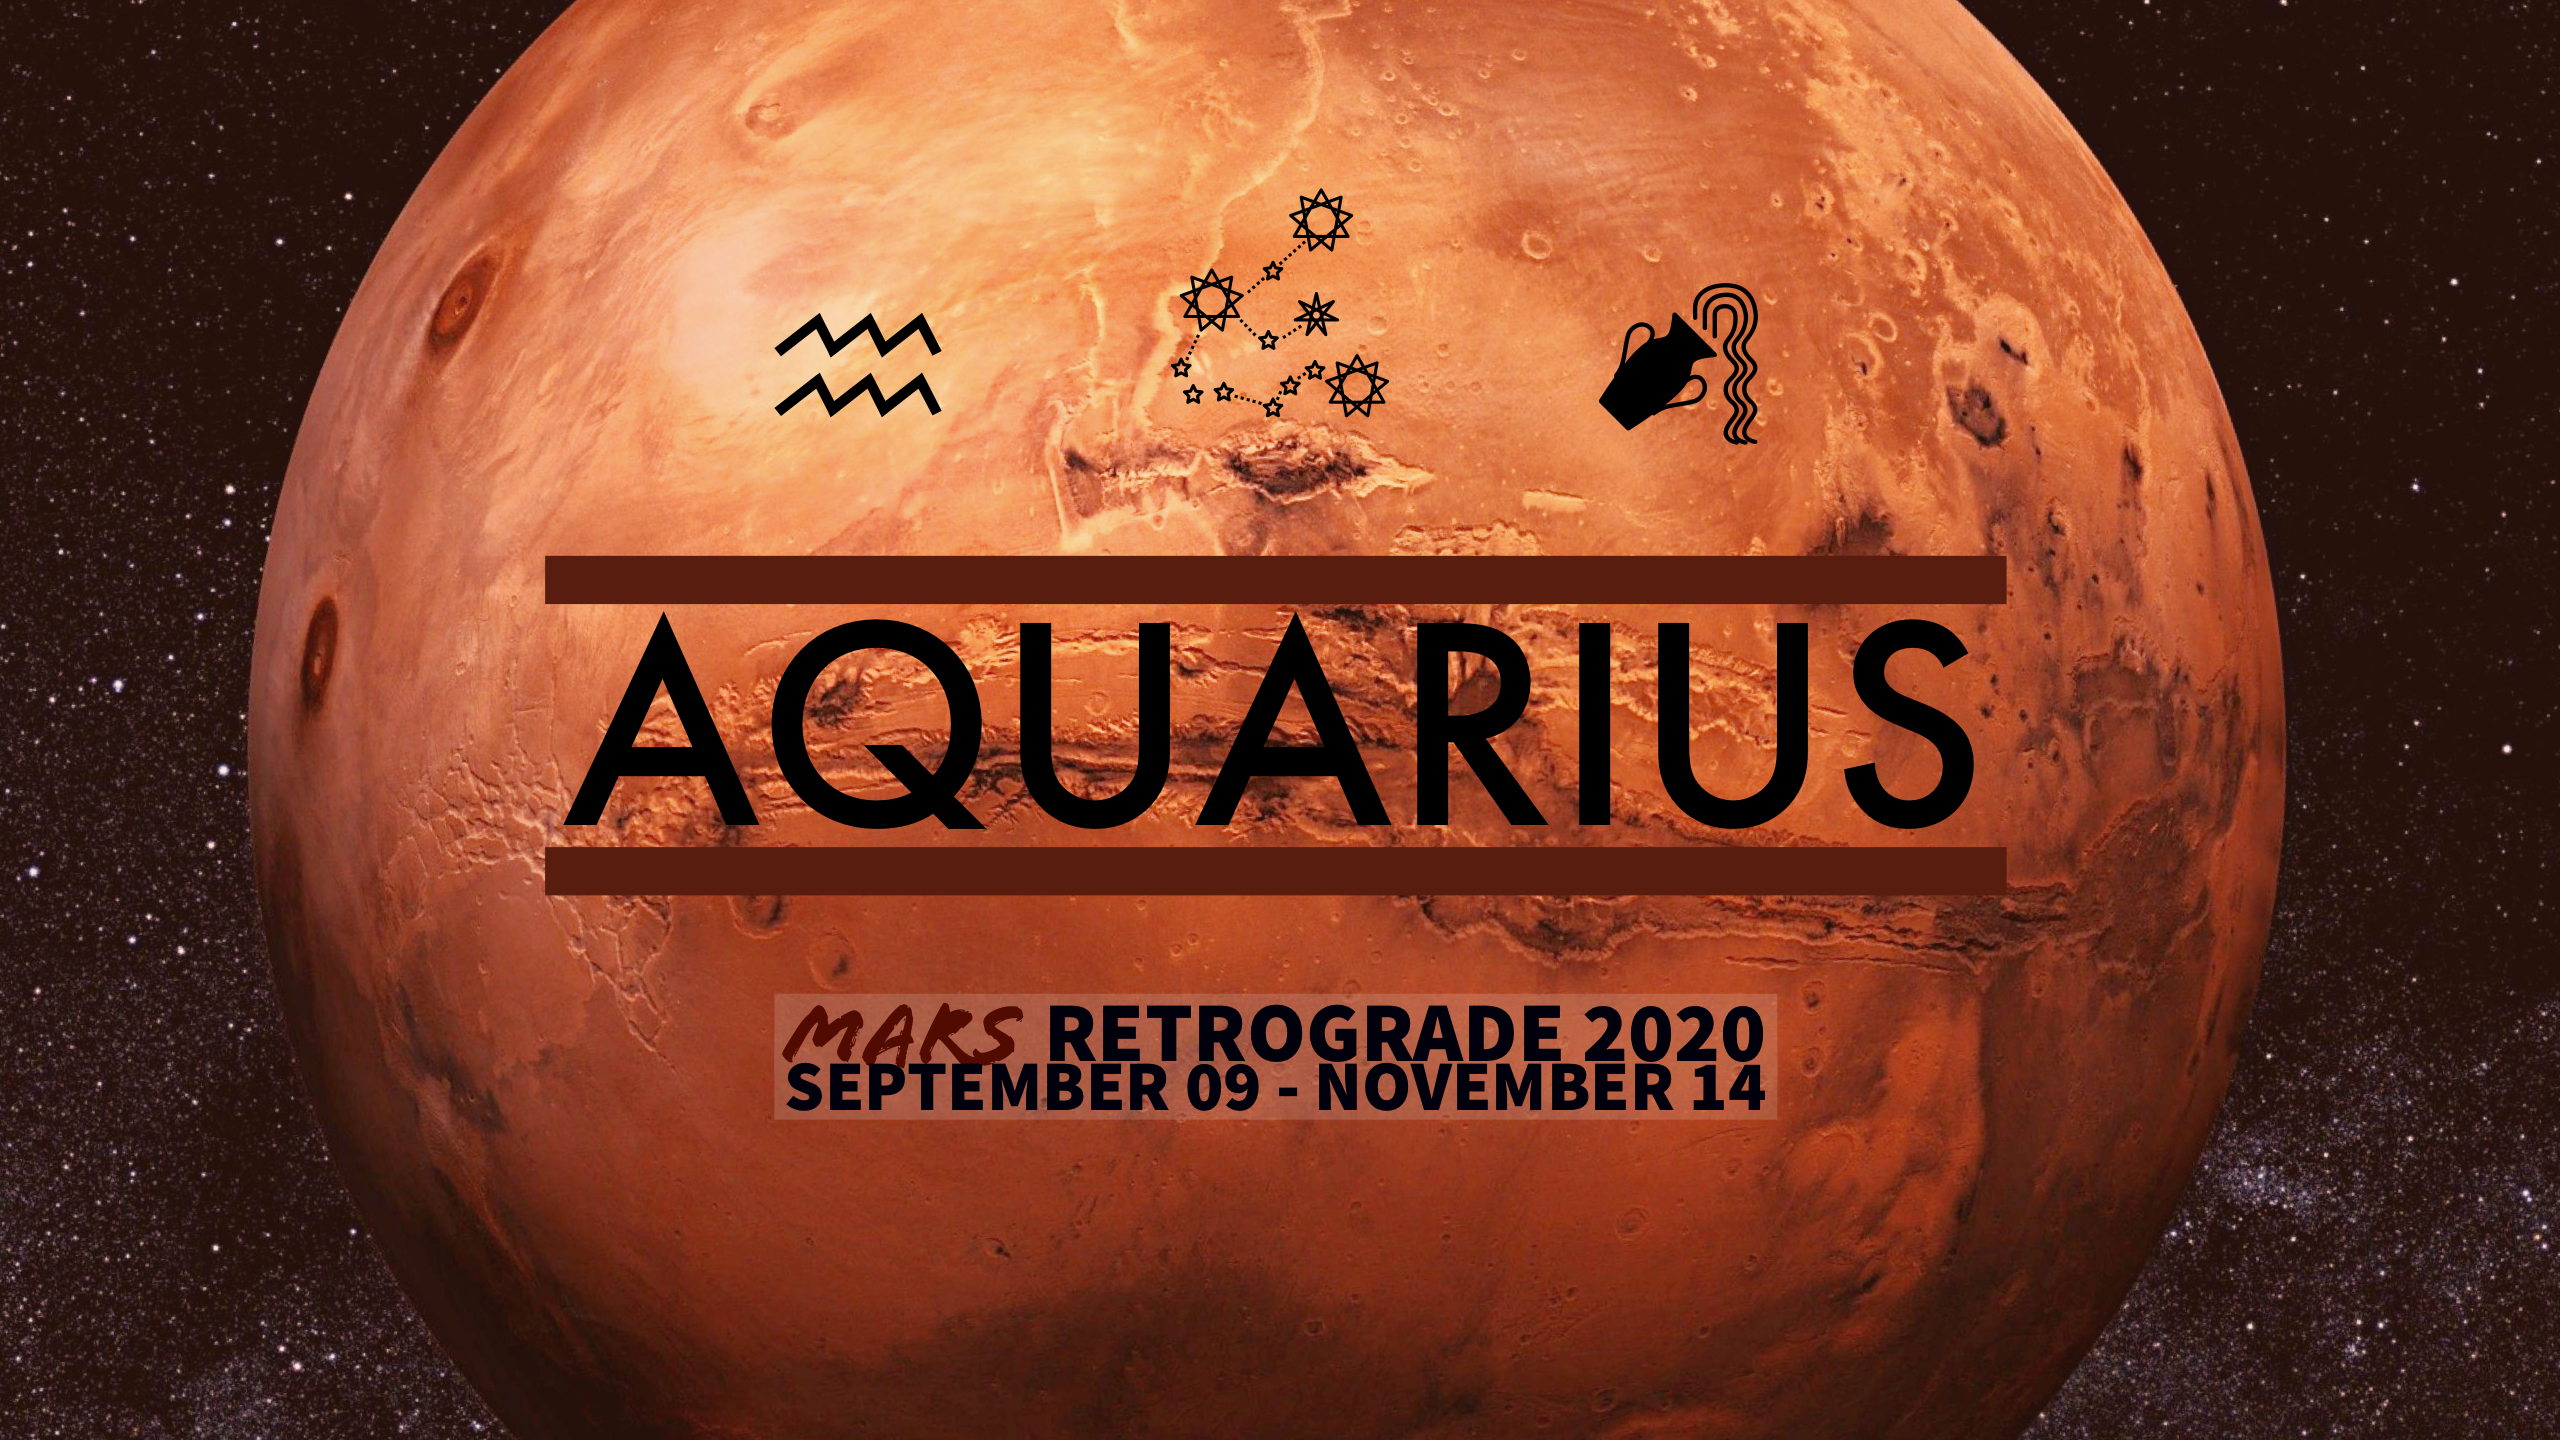 2020 Mars Retrograde:11 Aquarius